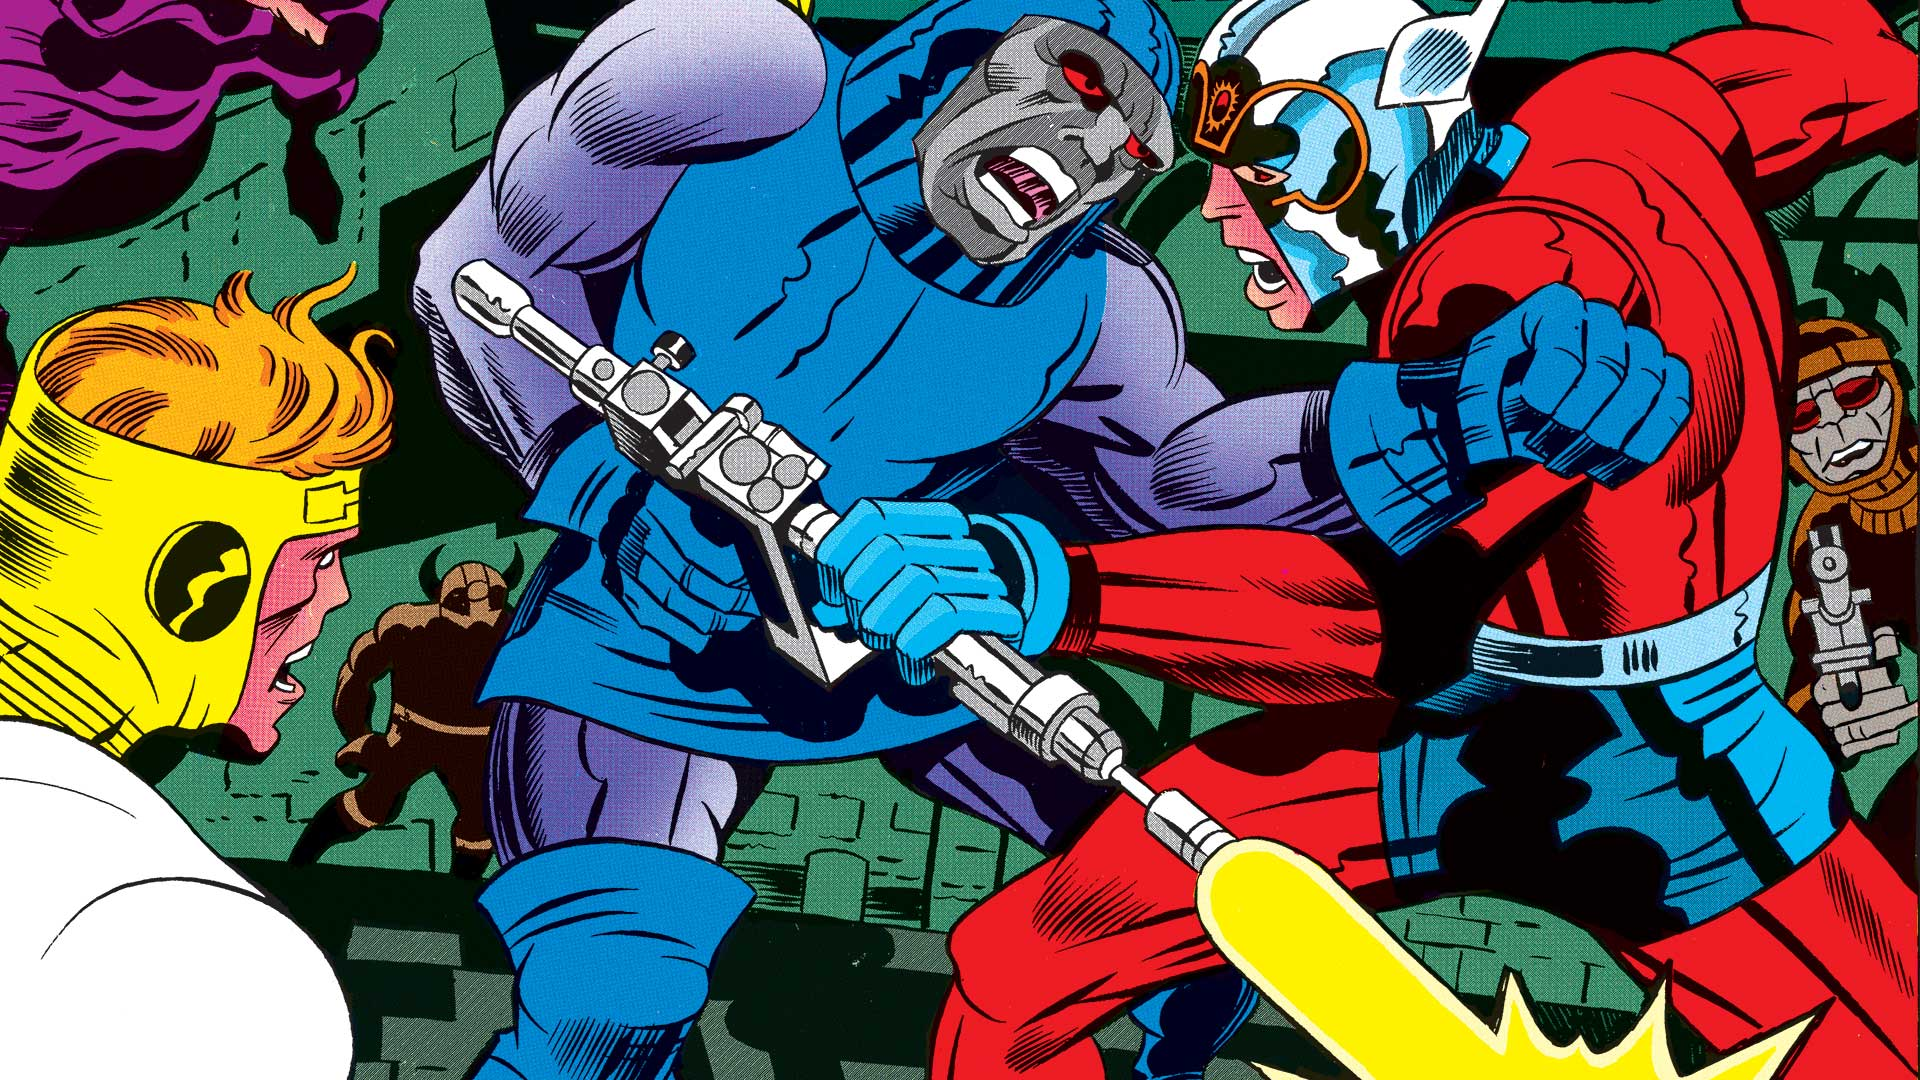 RUMOR: DC Planning New Gods Film, Will Feature Highfather, Darkseid And Mister Miracle